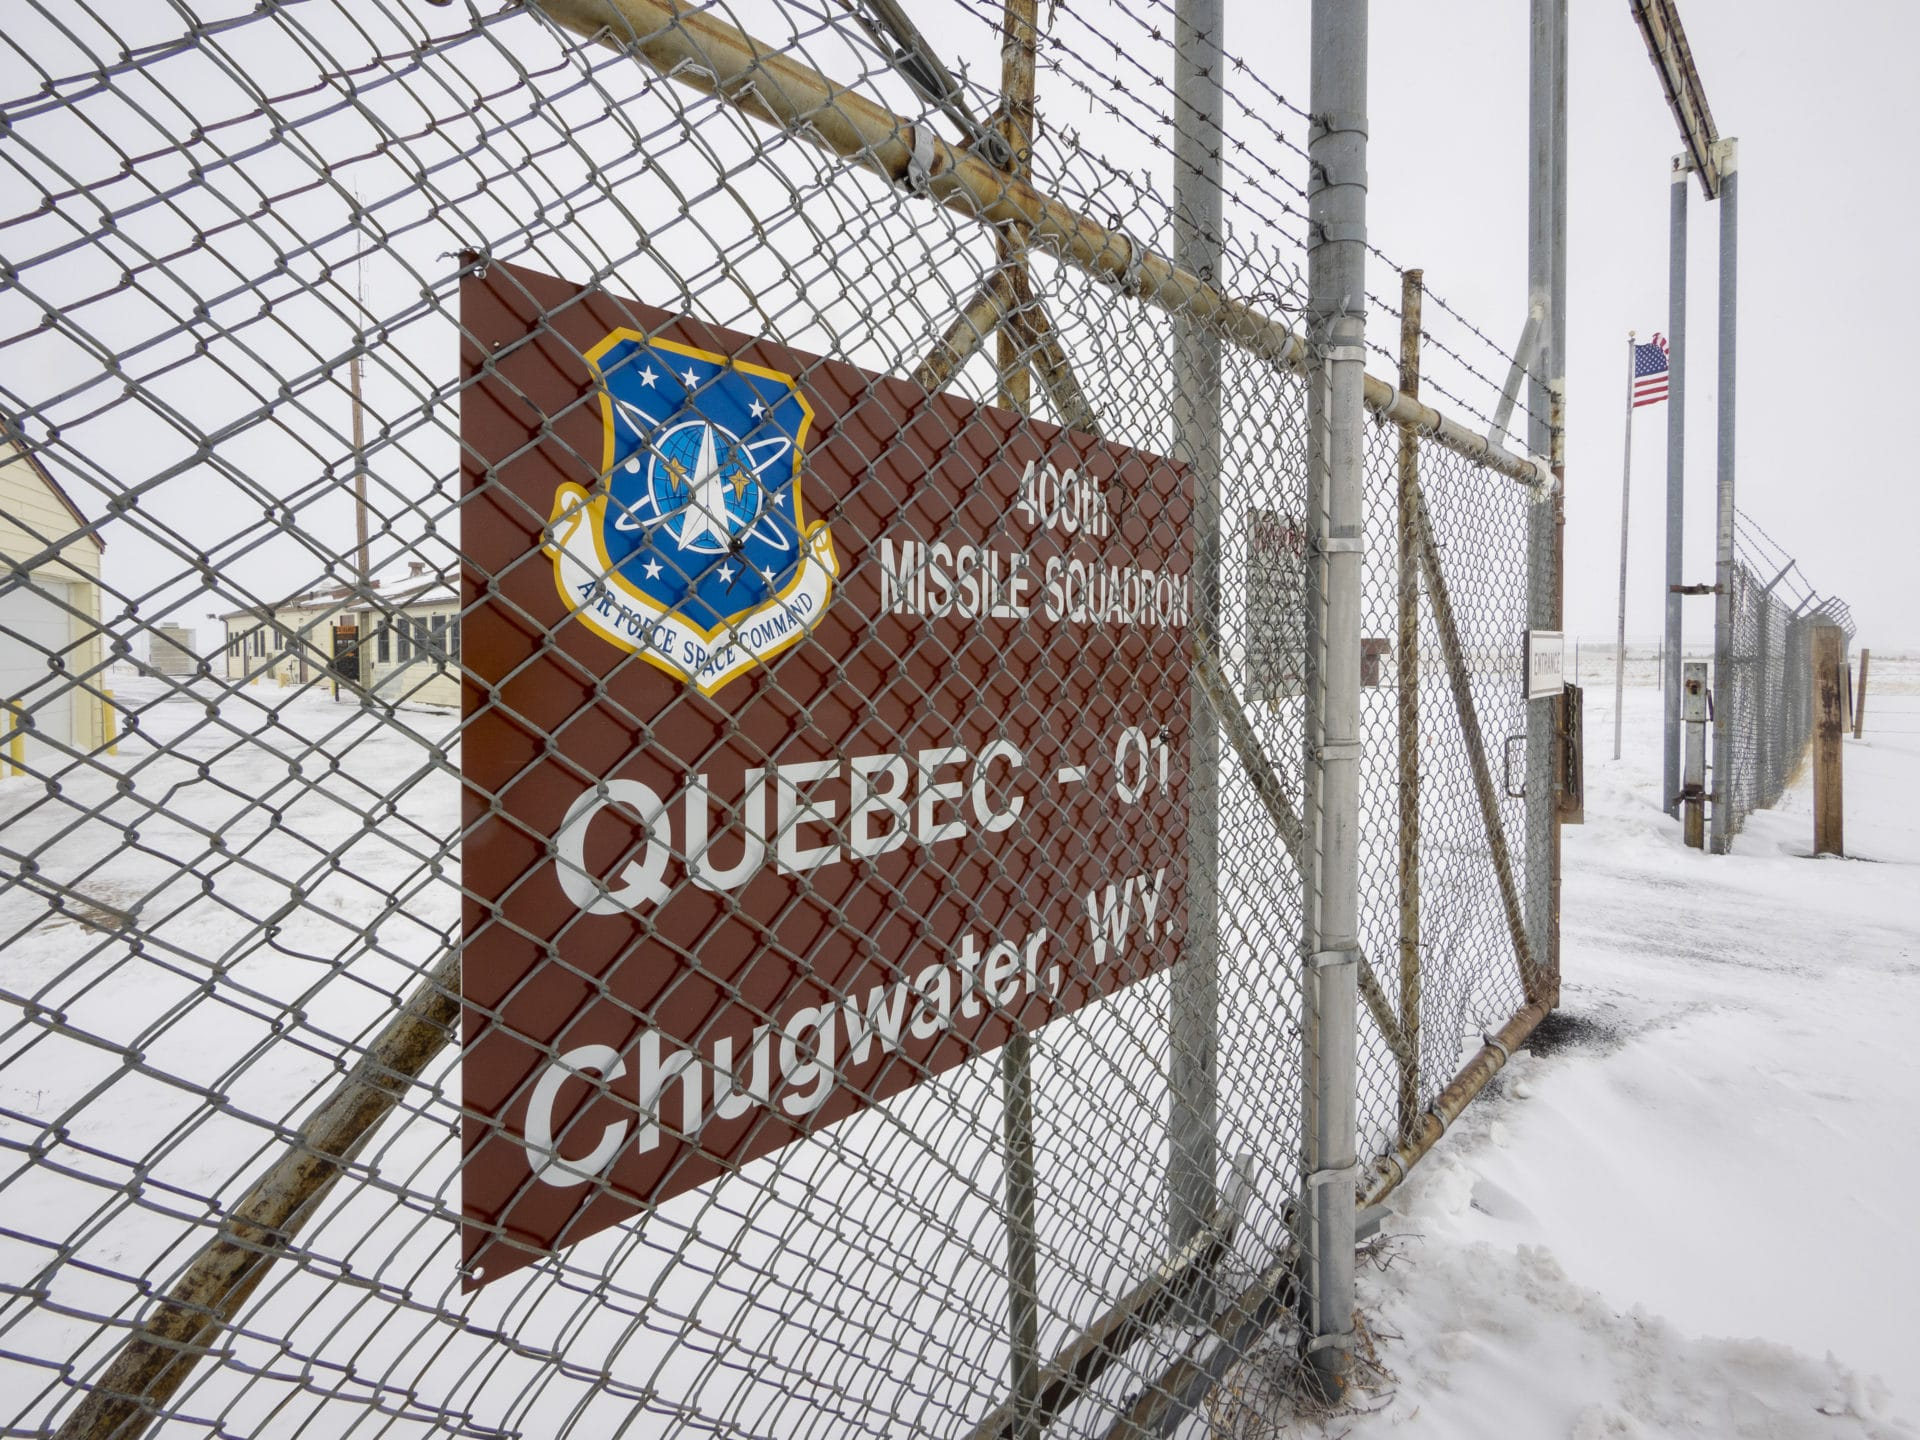 Welcome Sign at Quebec 01 Peacekeeper Site in Wyoming